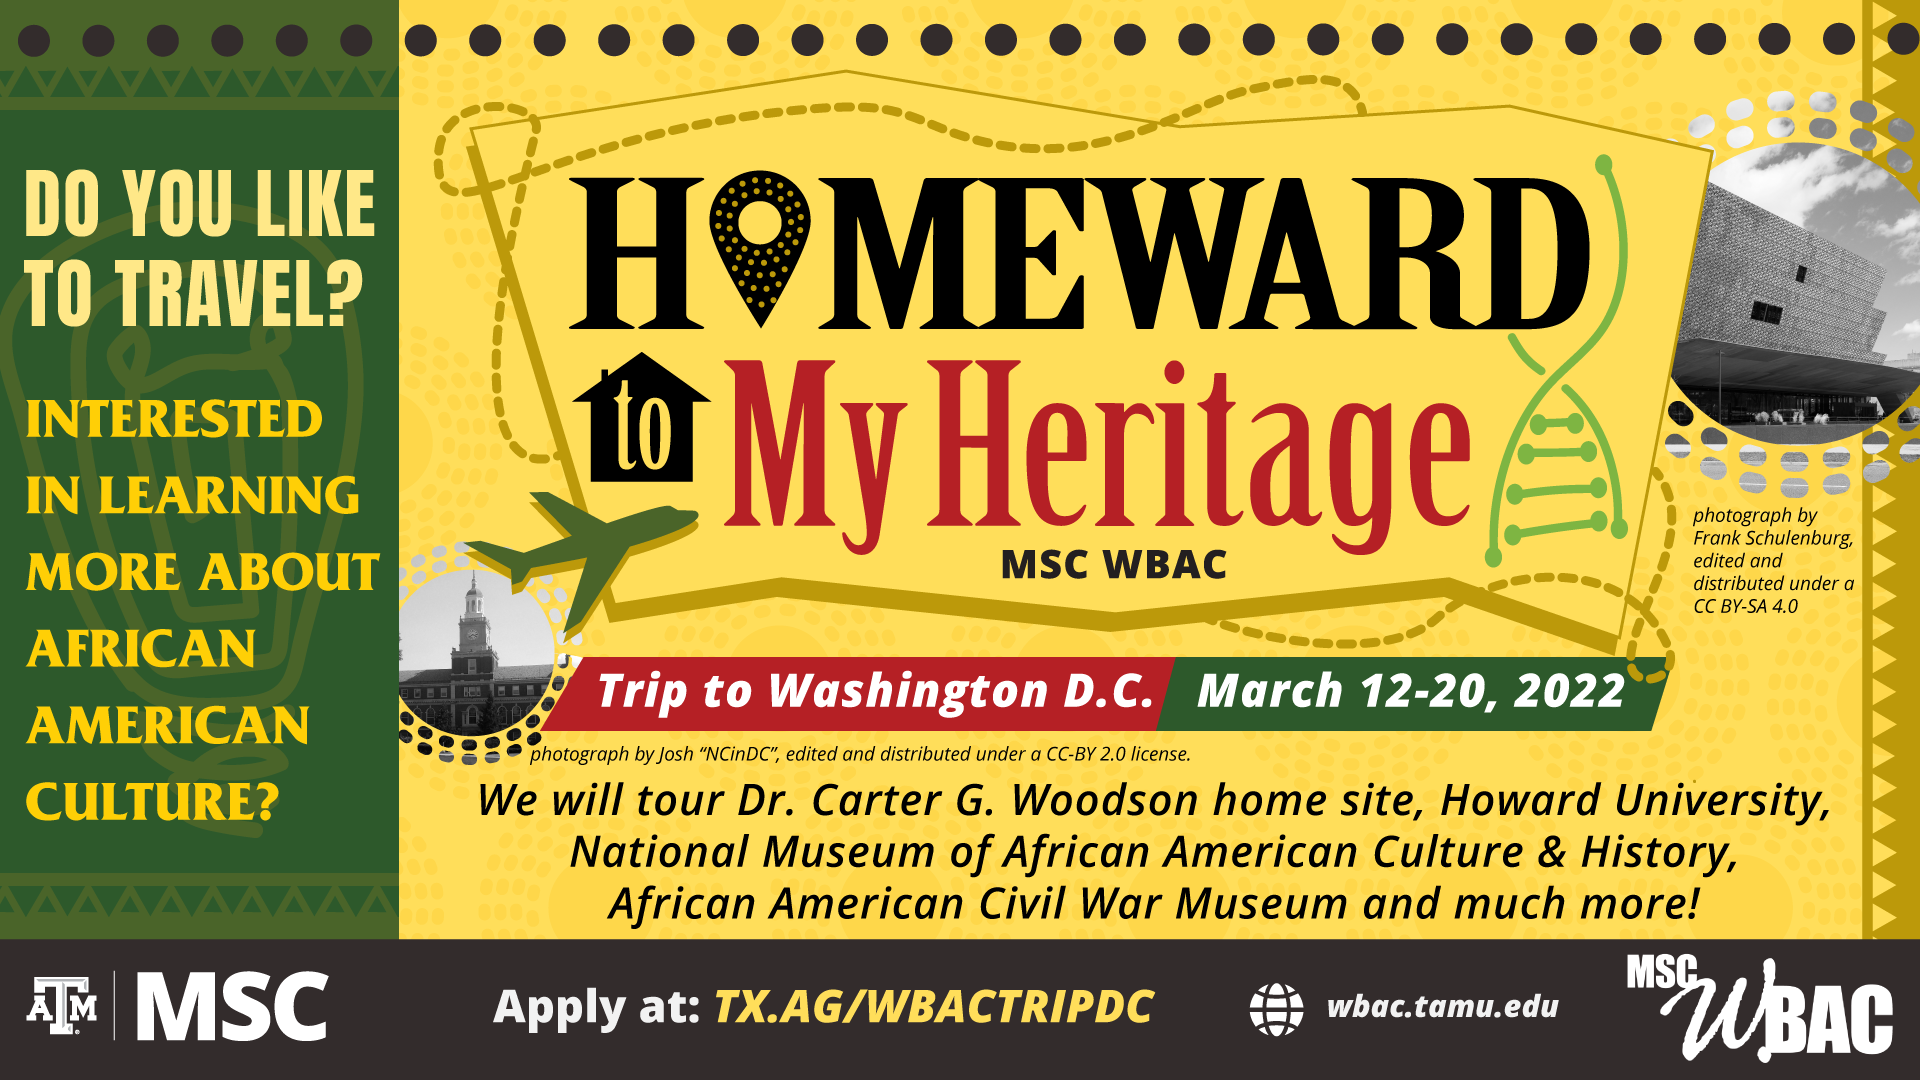 """Do you like to travel? Interested in learning more about African American Culture? come to """"Homeward to my Heritage"""" hosted by MSC WBAC, trip to Washington D.C. on March 12-20, 2022. We will tour Dr. Carter G. Woodson Home Site, Howard University, National Museum of African American Culture & History, African American Civil War Museum and much more! Apply at: tx.ag/wbactripdc. Website: wbac.tamu.edu."""